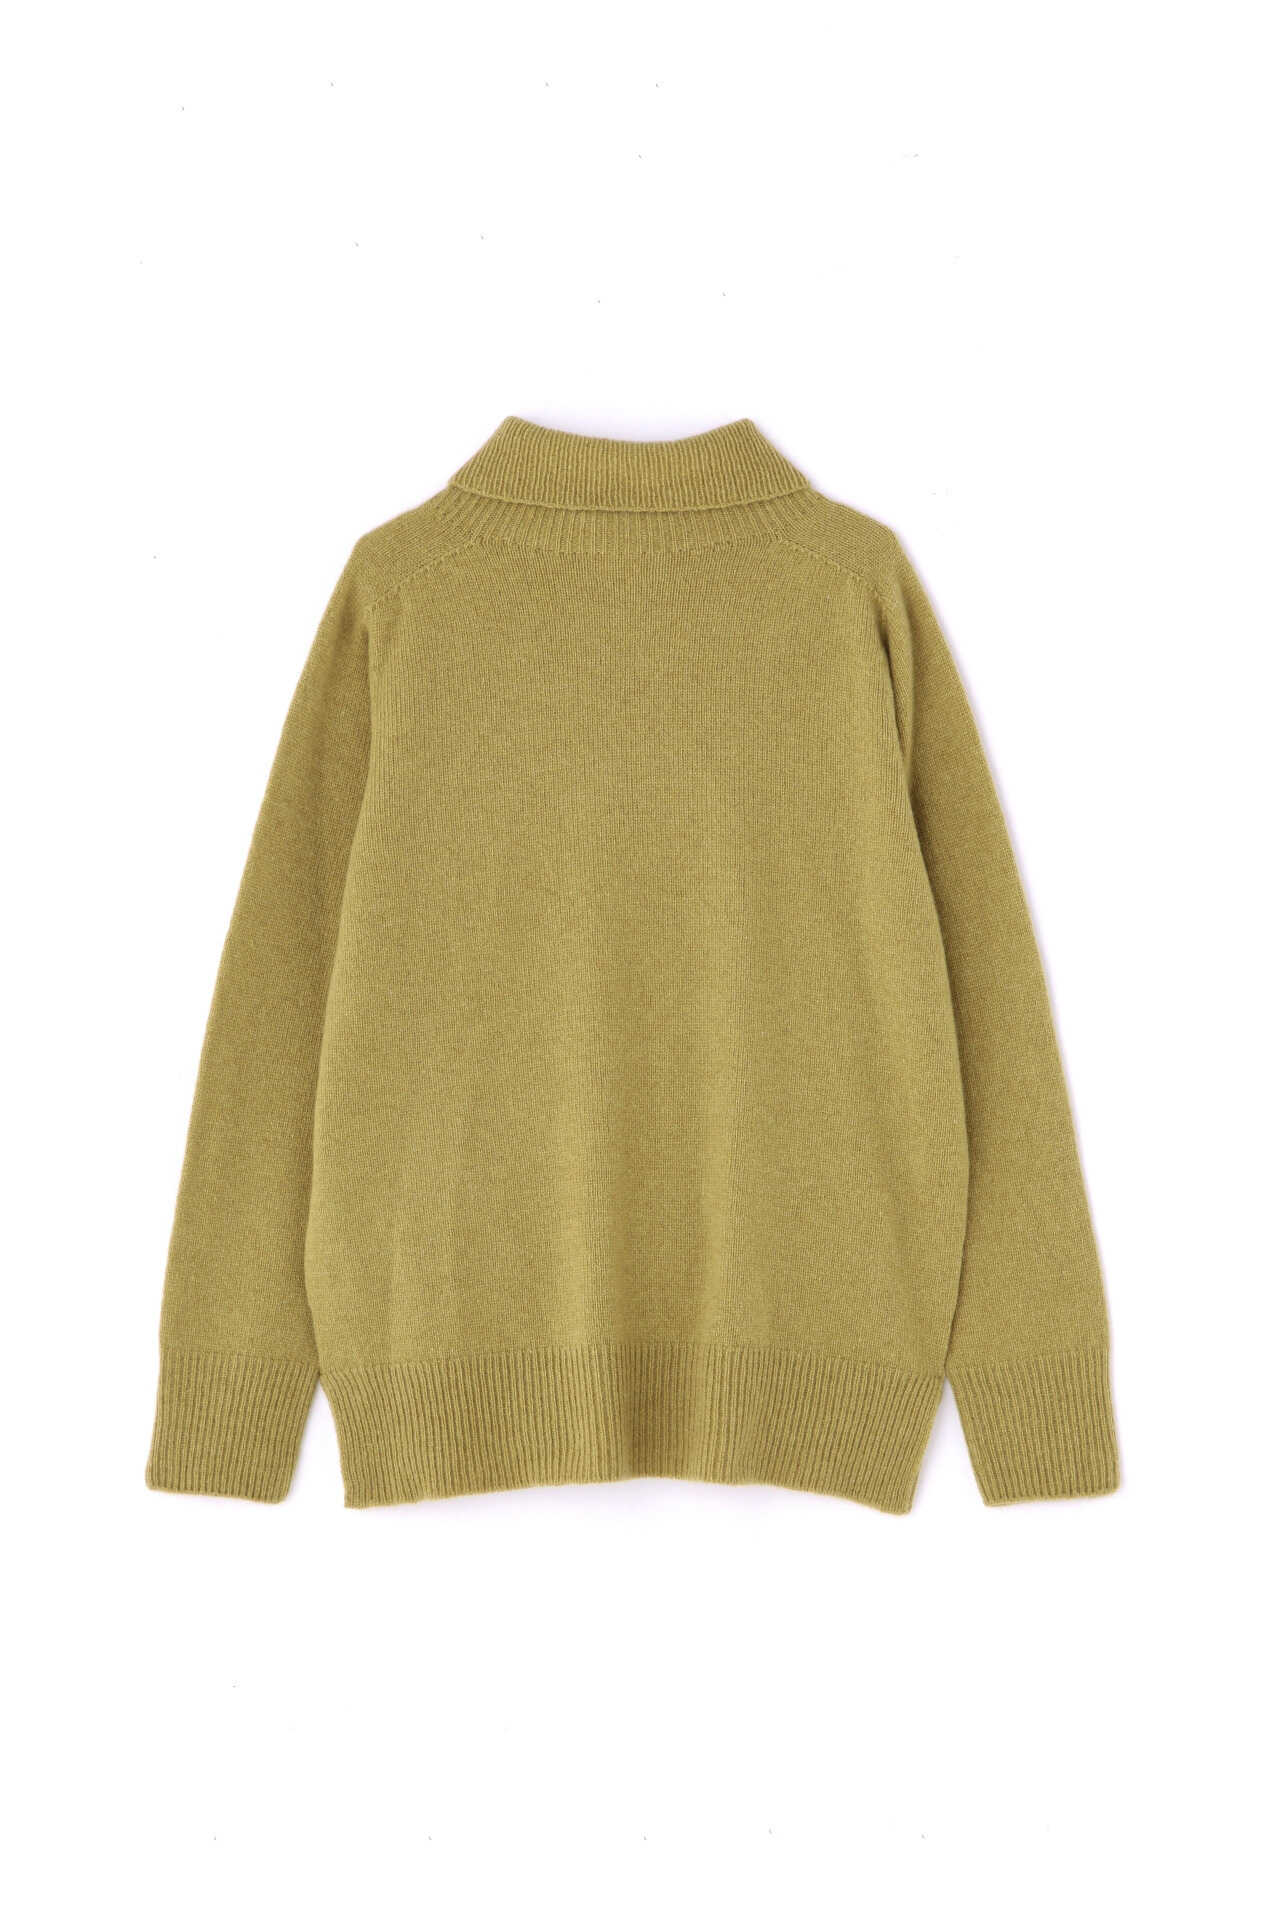 WOOL CASHMERE16